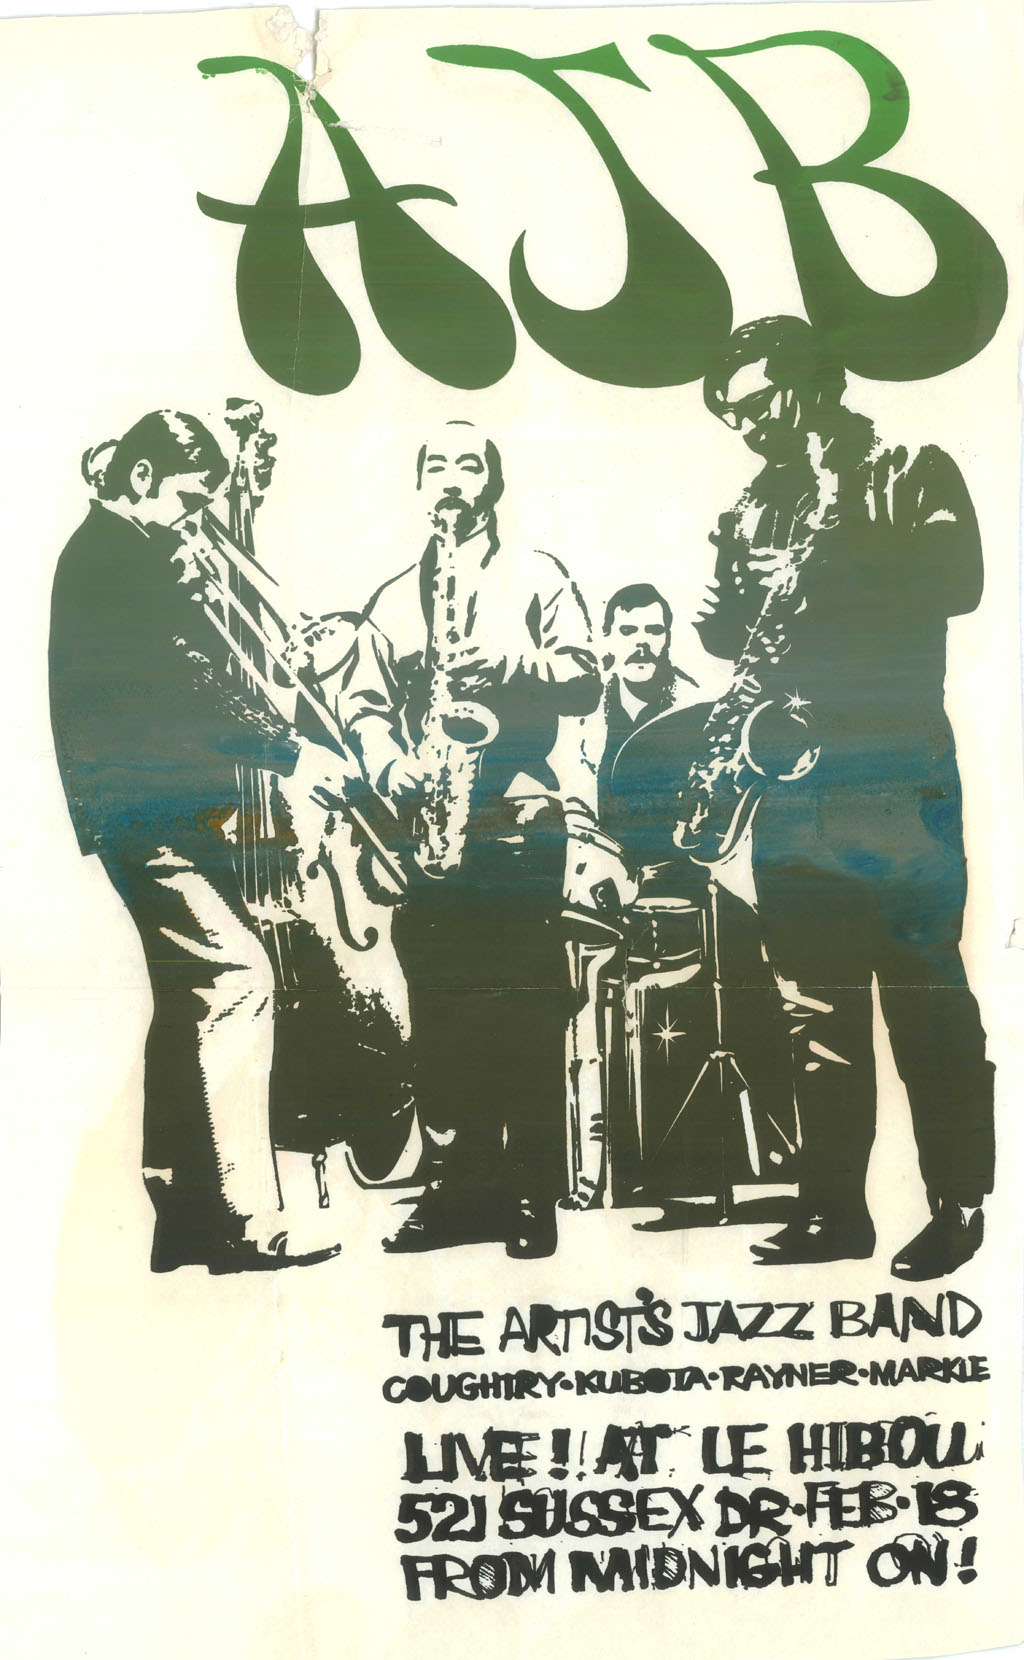 The Artist's Jazz Band